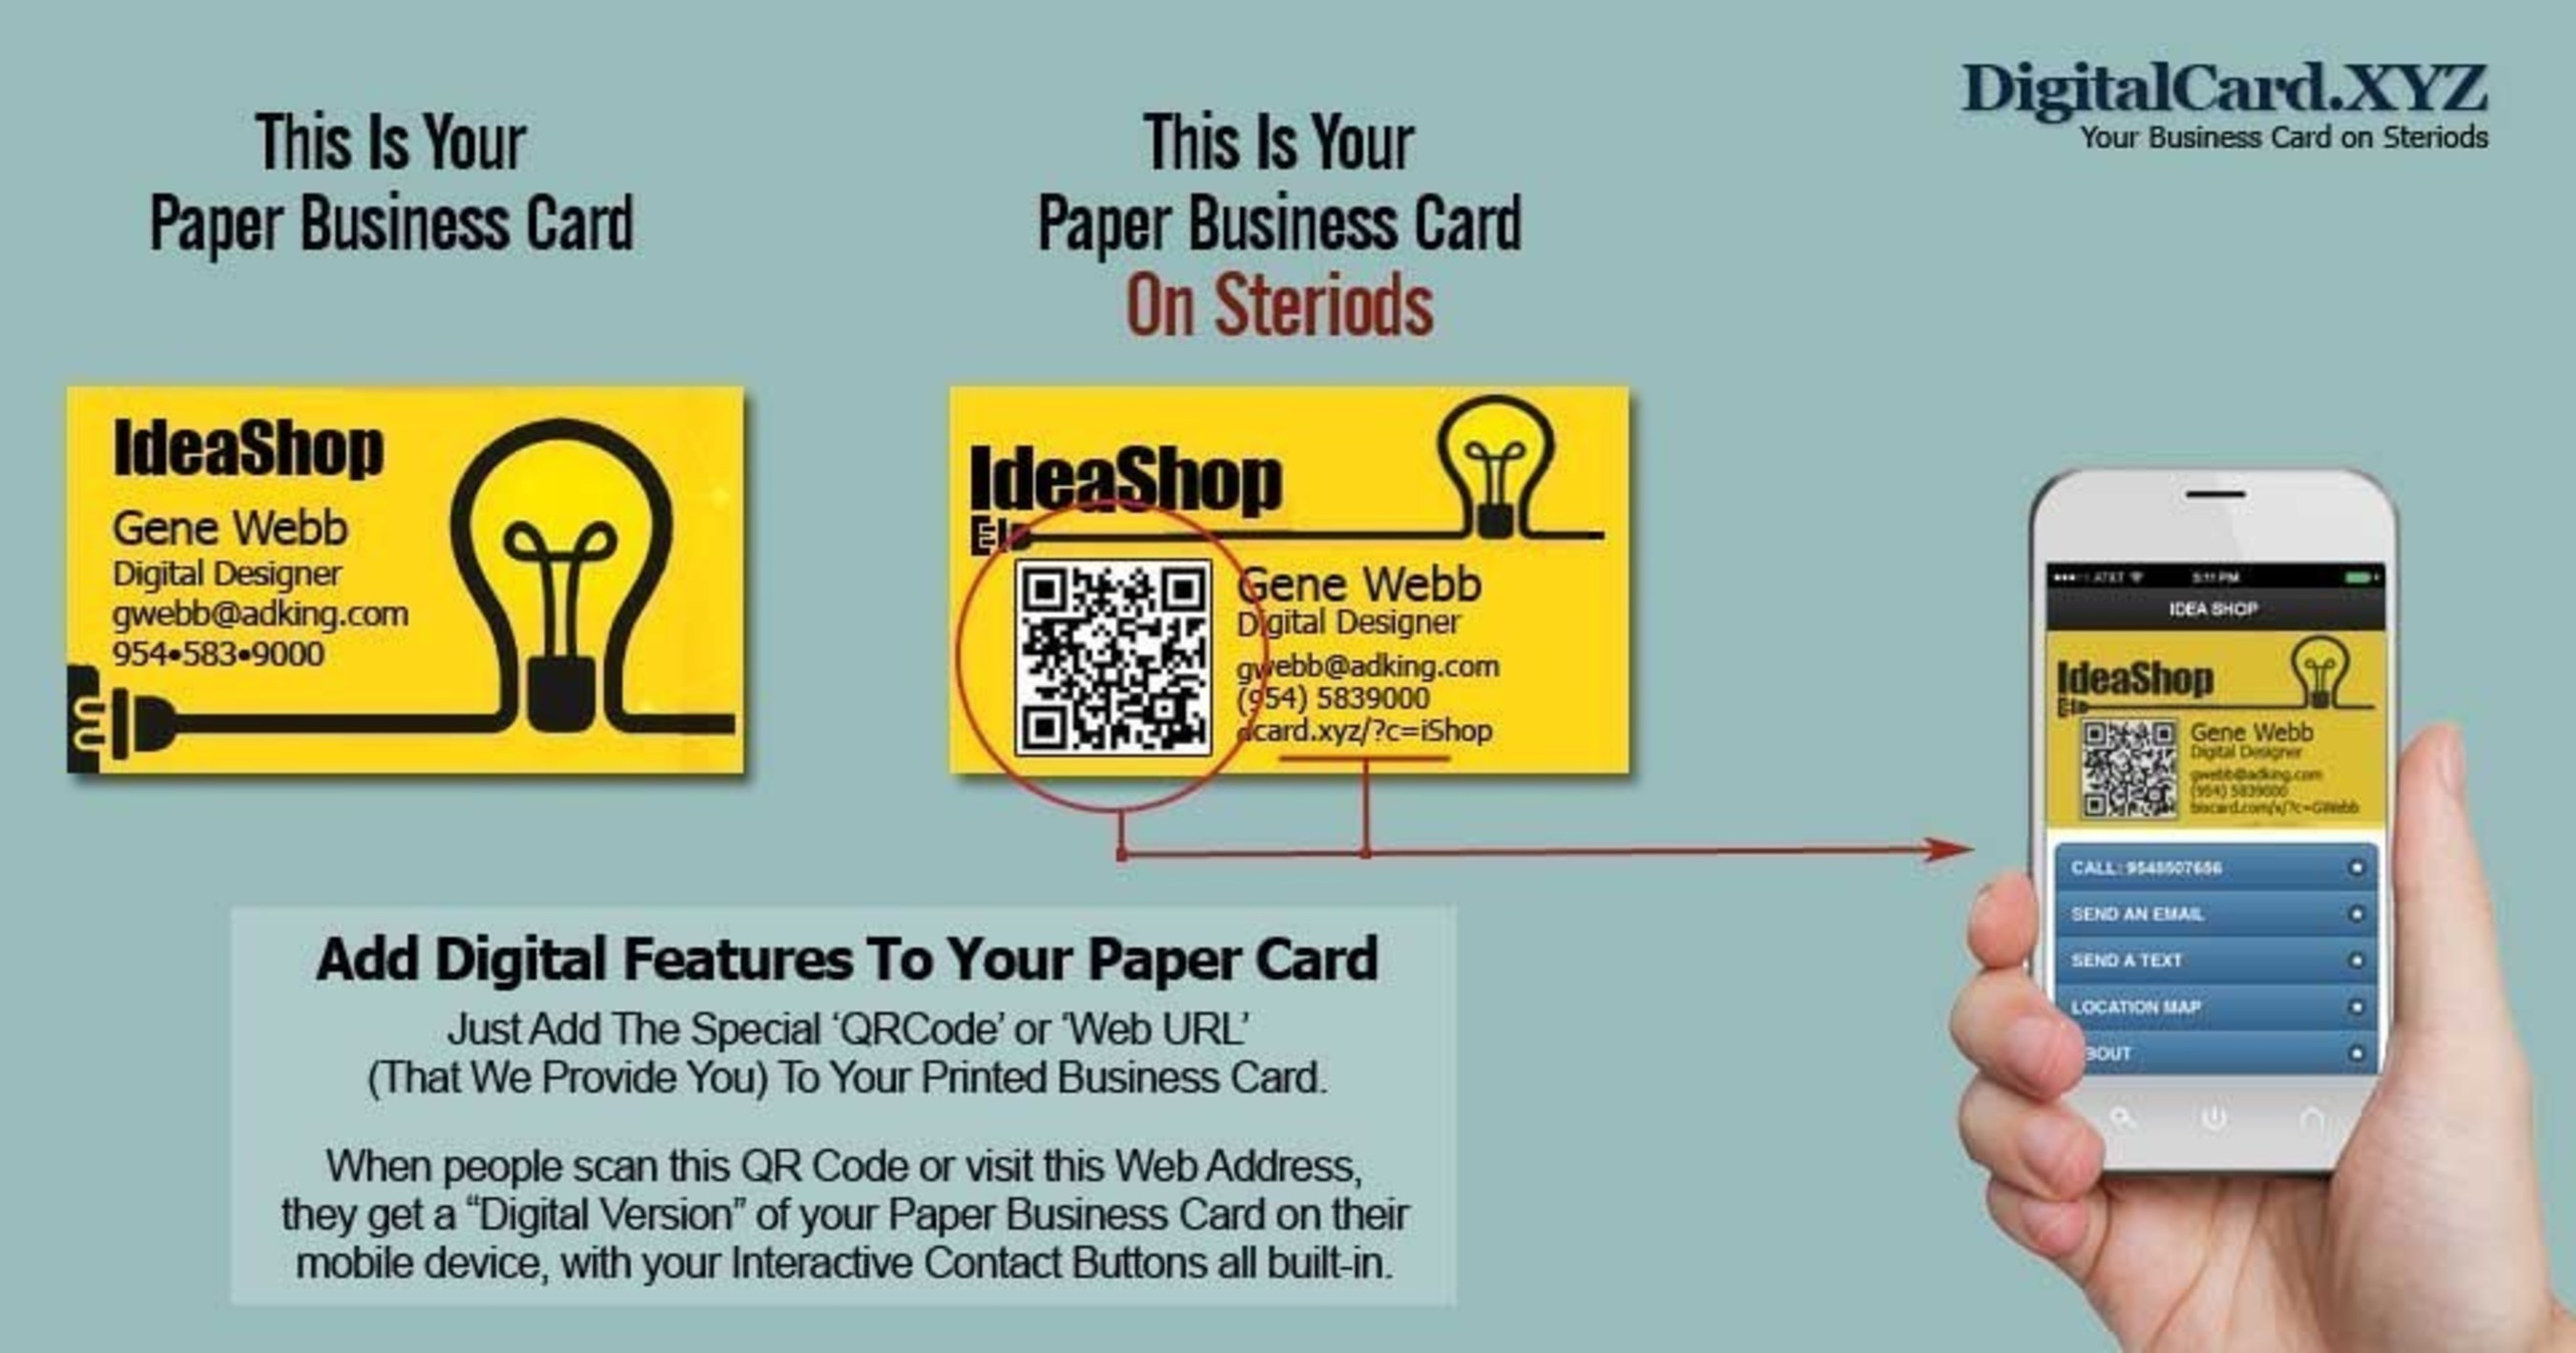 New Digital Business Card Launched